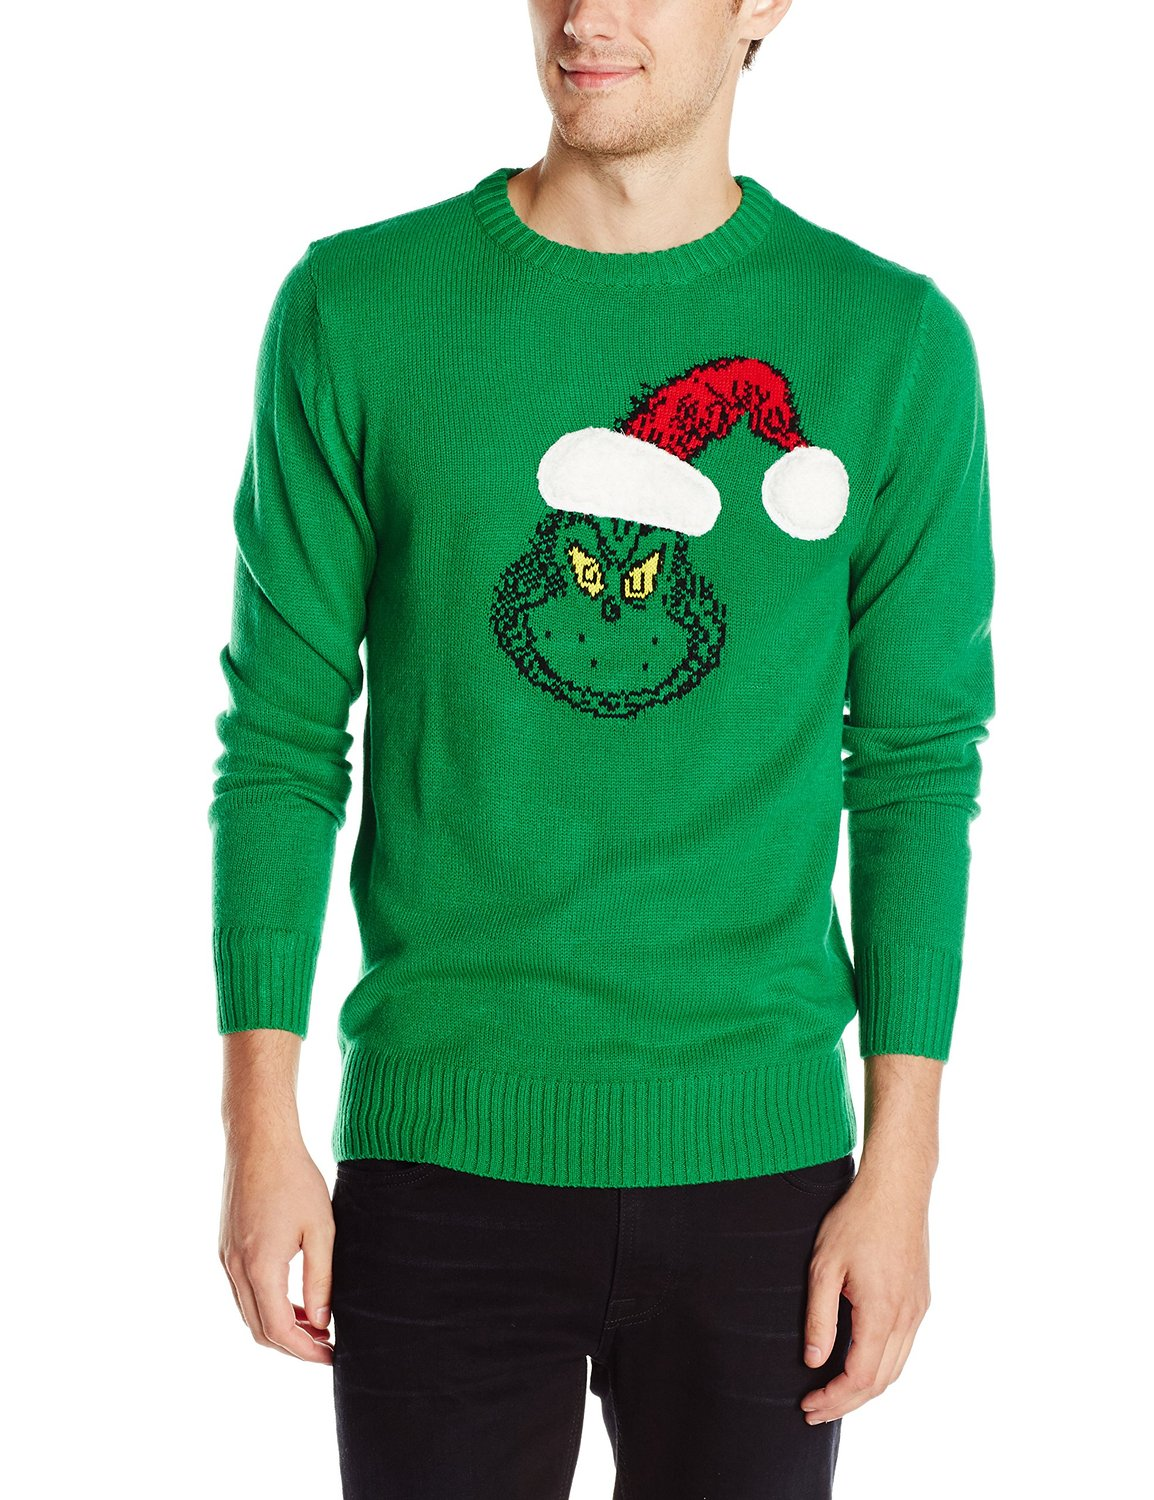 Grinch sweater | 25+ Grinch crafts and cute treats